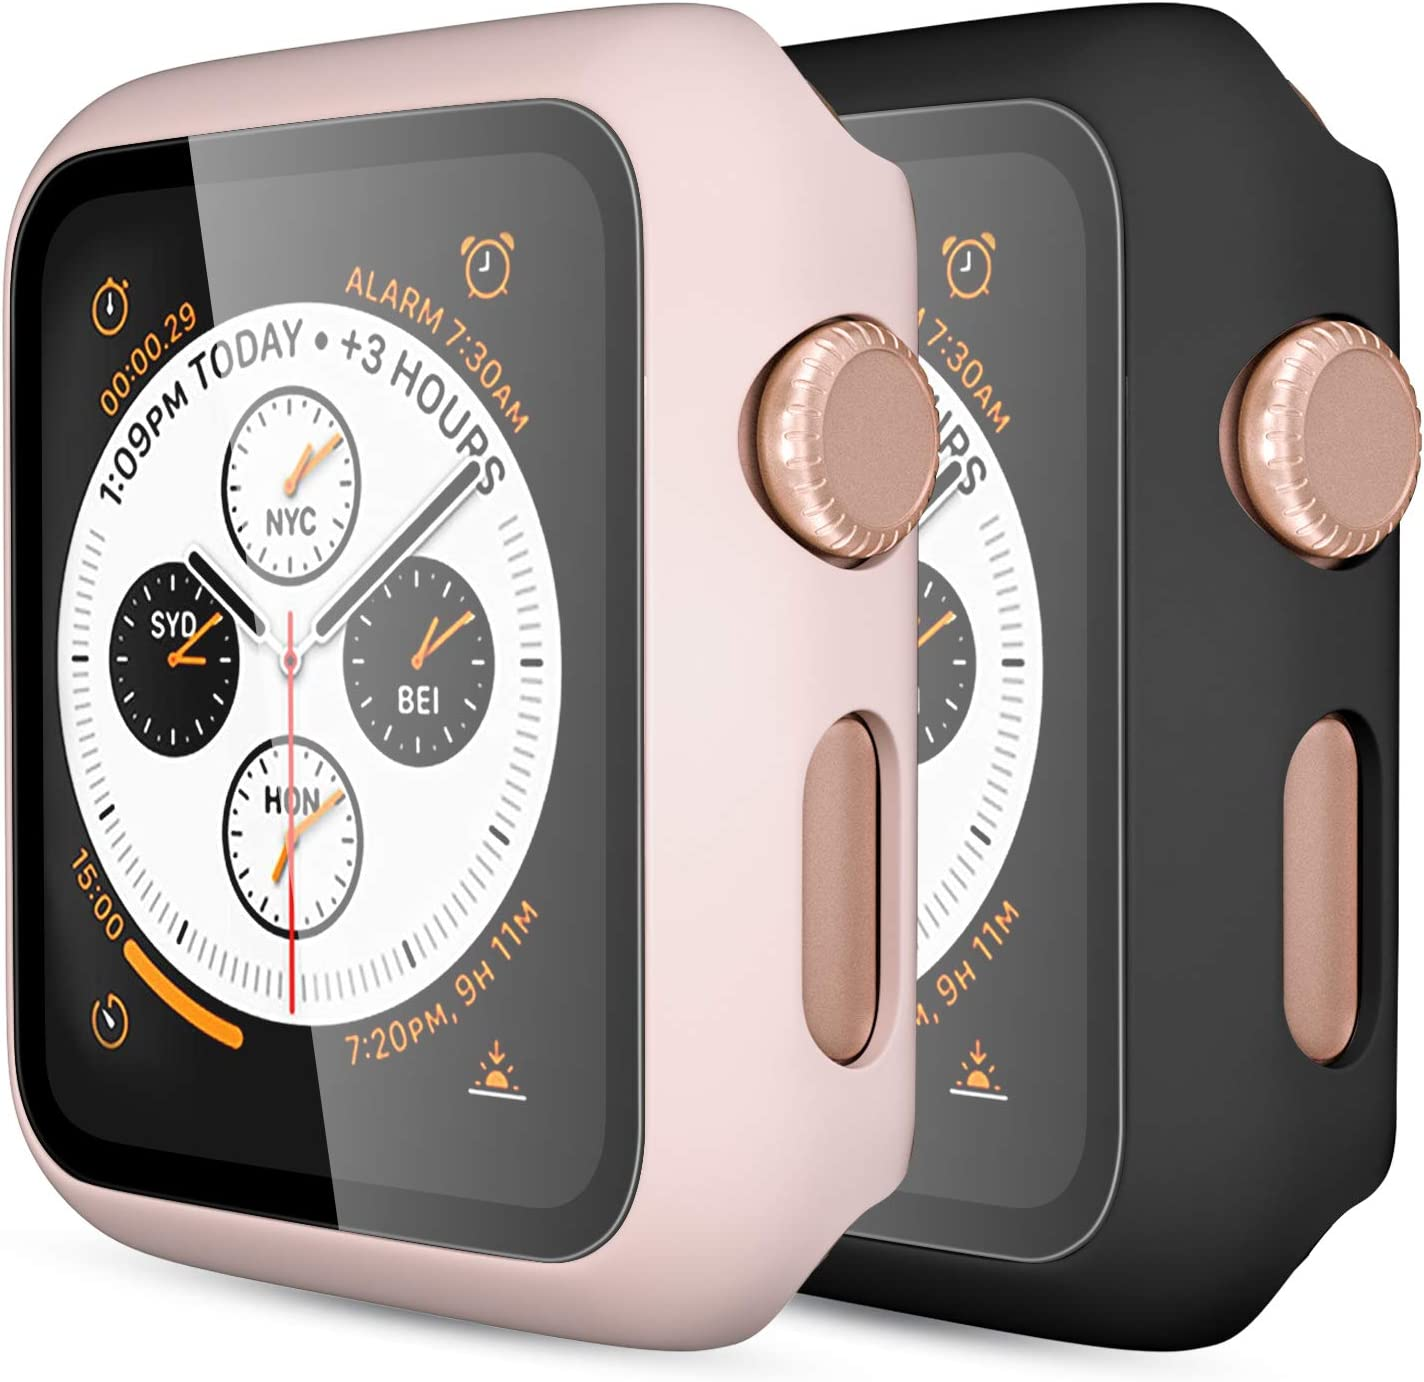 [2 Pack] GEAK Compatible with Apple Watch Case 38mm, Full Coverage Bumper Protective Case with Screen Protector for iWatch Series 3/2/1, Black/Pink